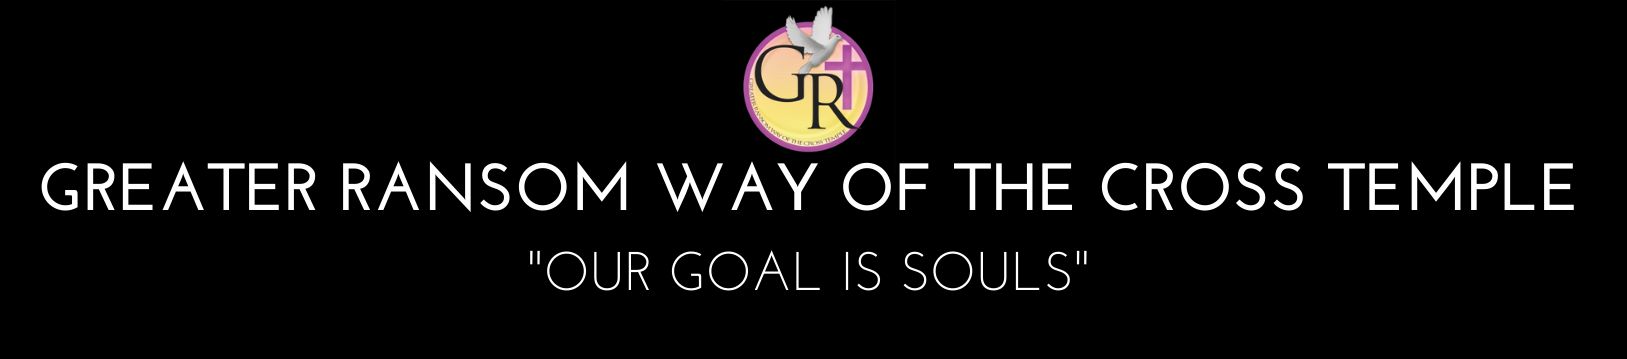 Logo for Greater Ransom Way of the Cross Temple